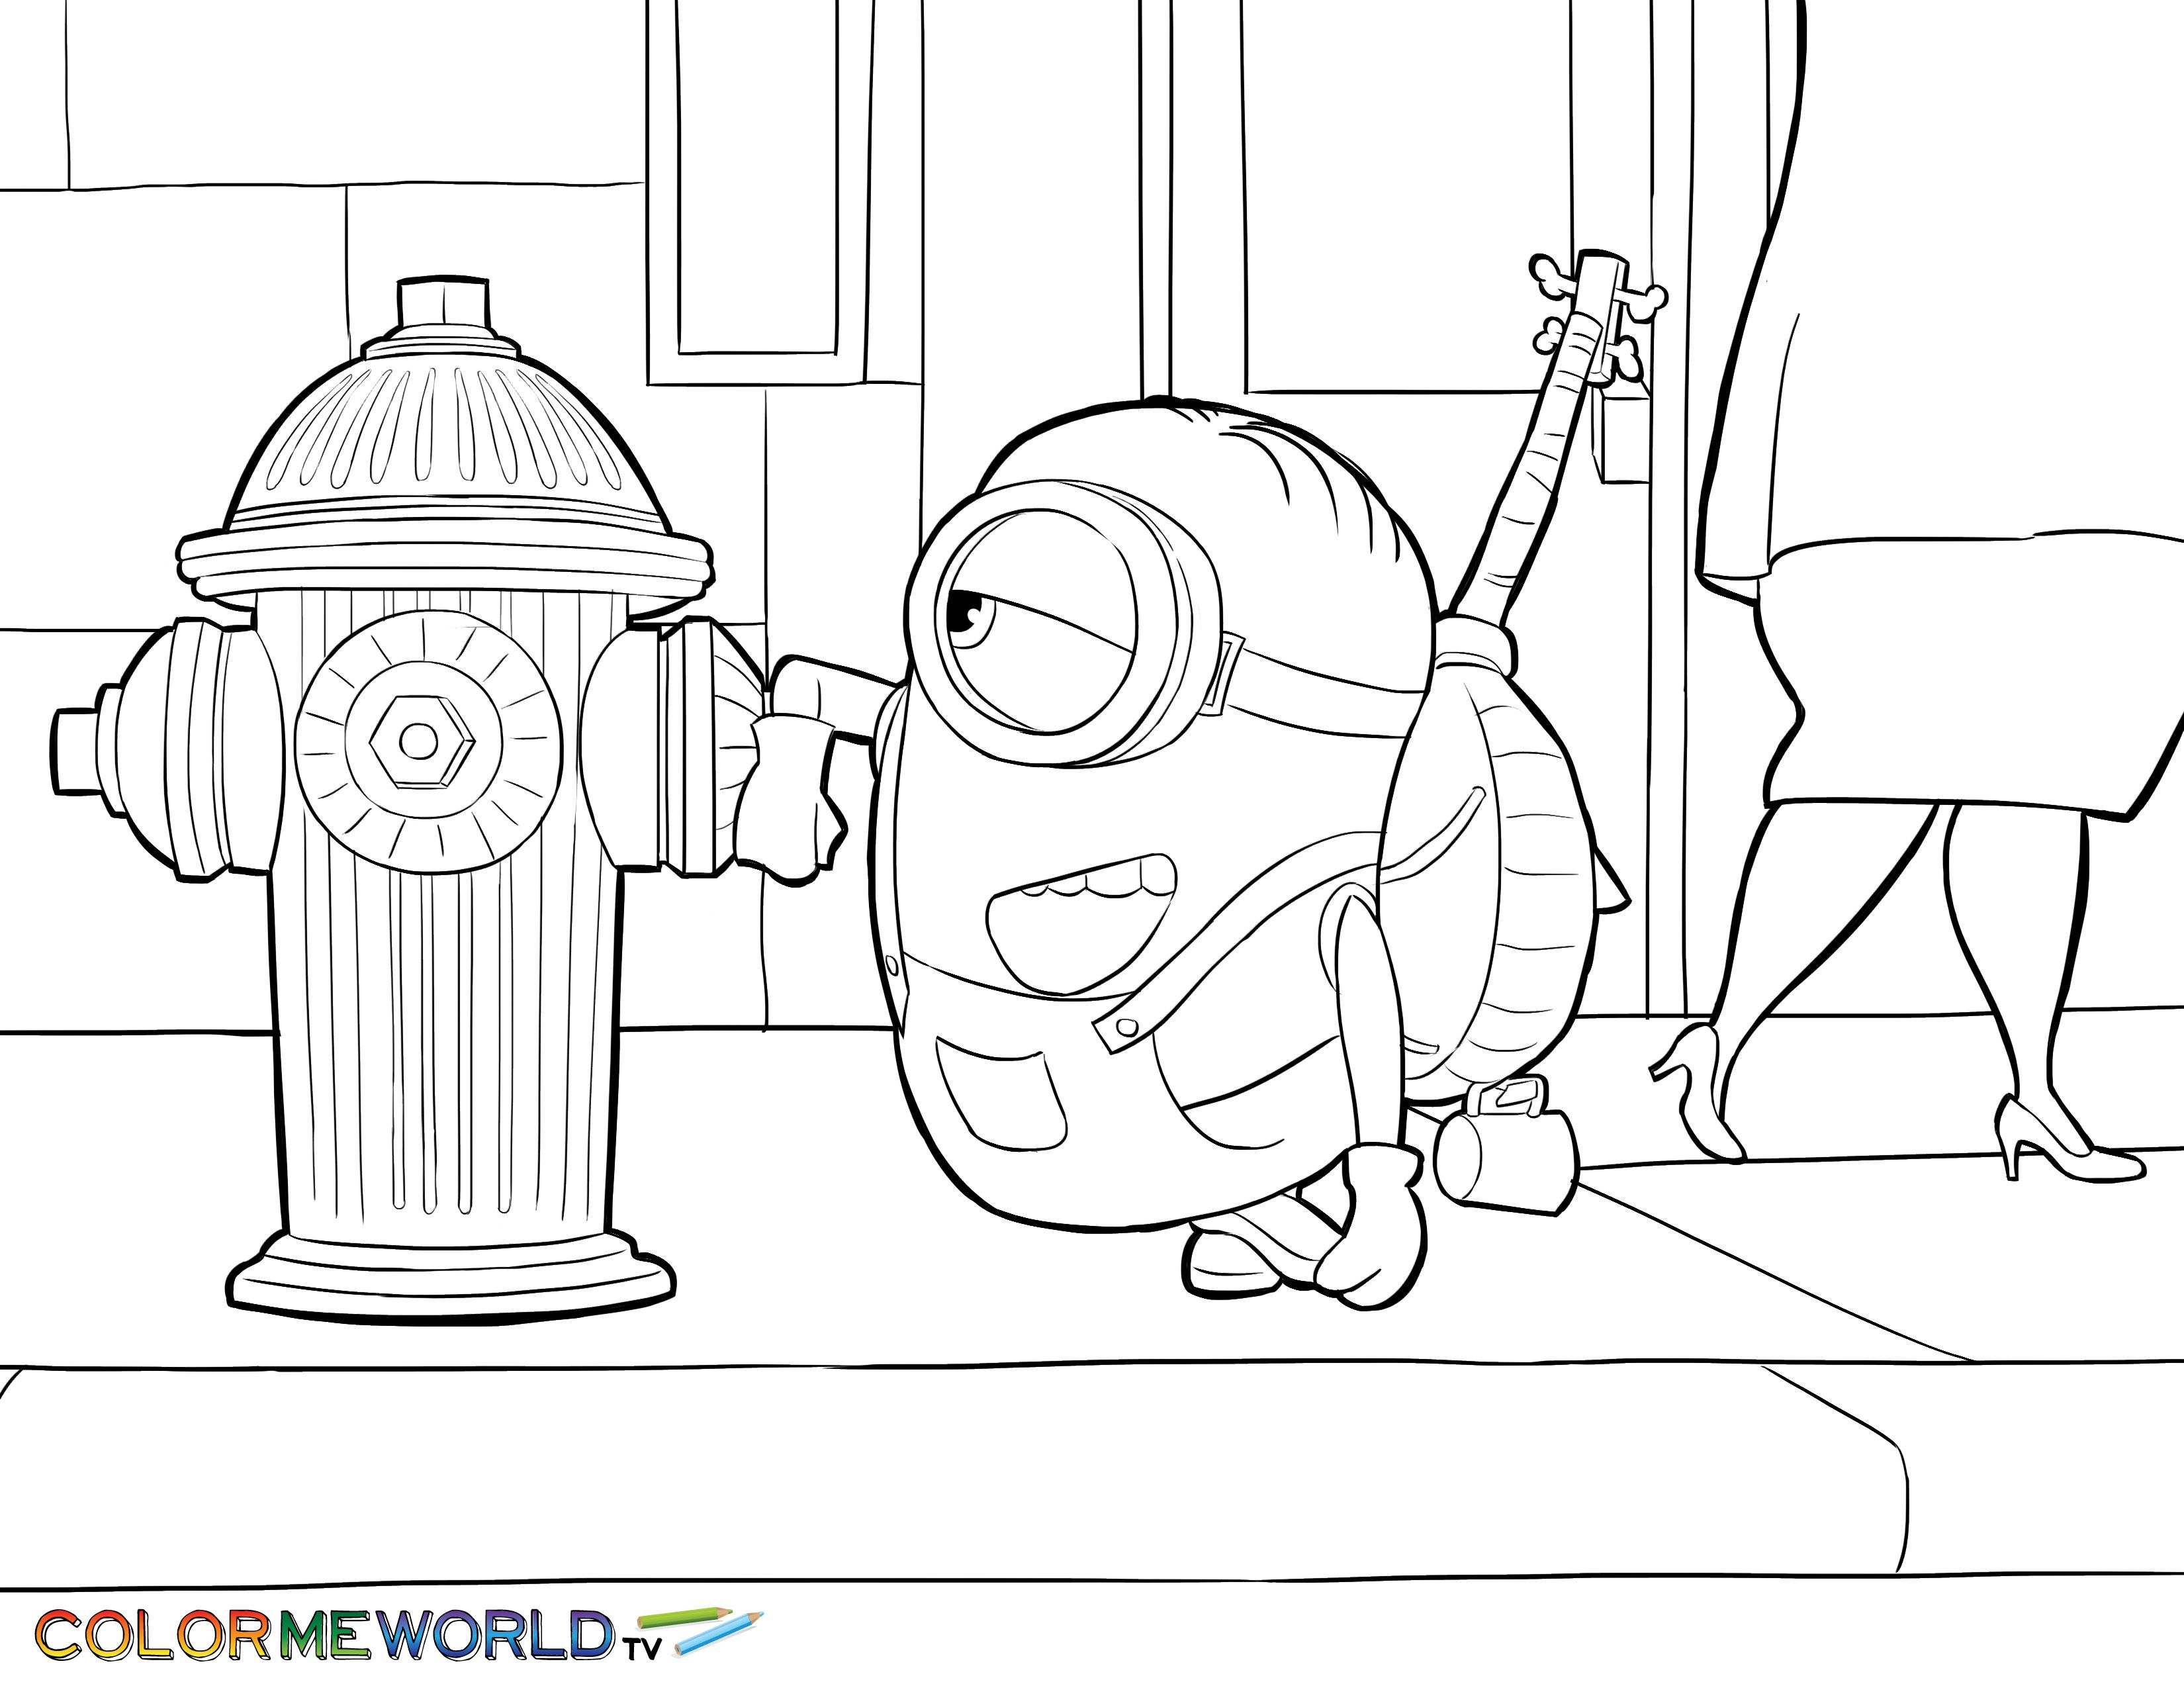 Stuart With Fire Hydrant PDF Printable Coloring Page